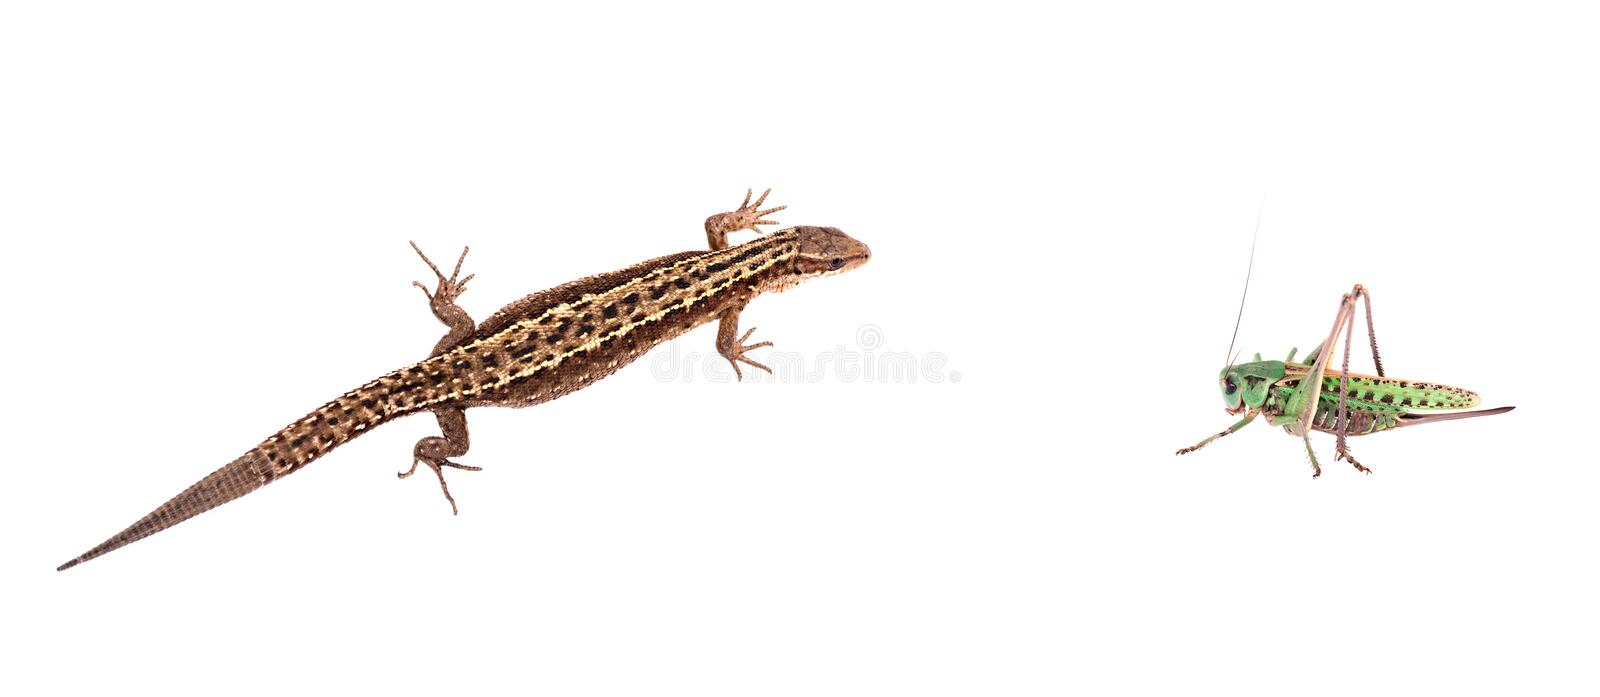 Download Lizard Against Locust Isolated On White Background Stock Image - Image of isolated, close: 14911357